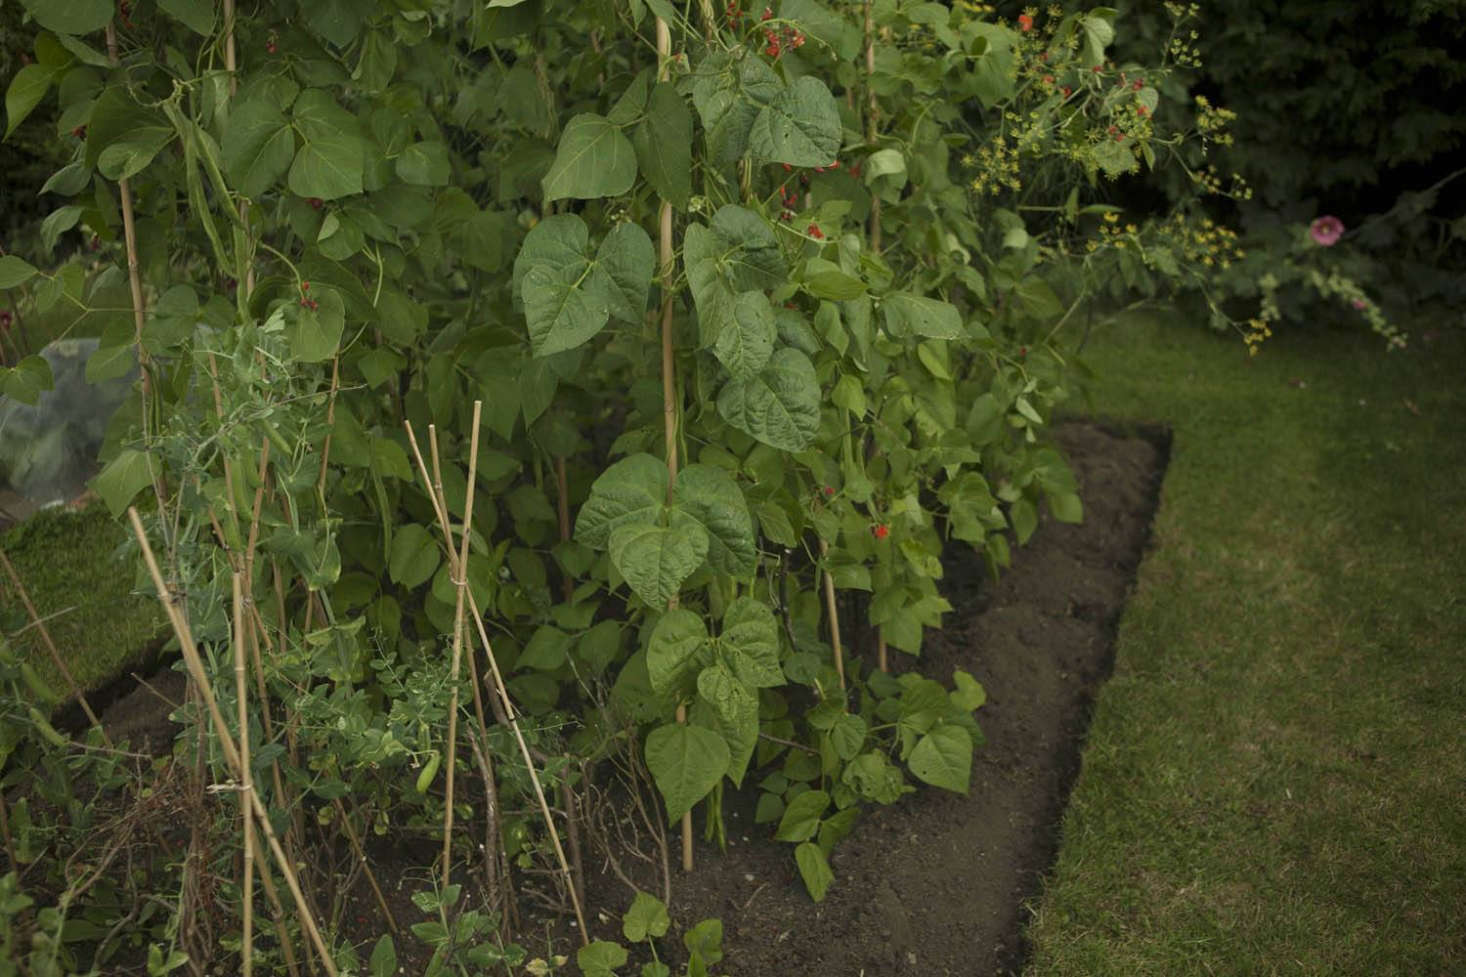 Straight edges and deep furrows give the impression of a vegetable garden that is carefully tended, instead of being left to its own devices. These impermanent edges will need to be trimmed and re-sliced from time to time.